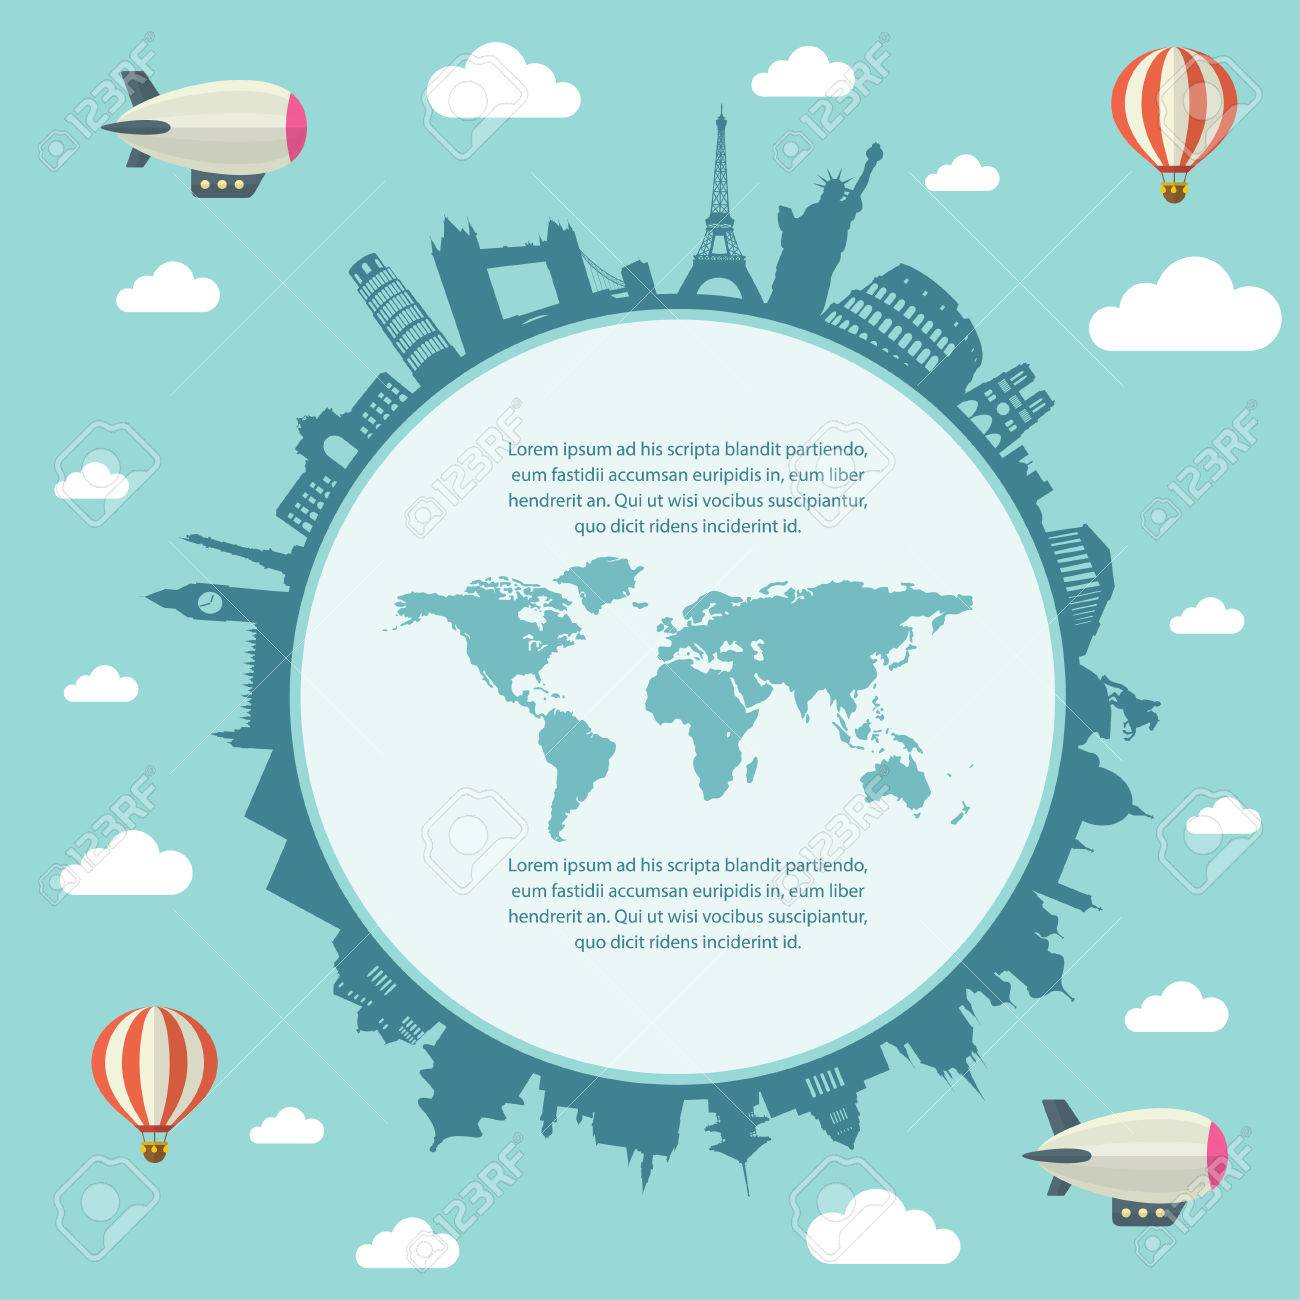 Travel and tourism background and infographic elements world travel and tourism background and infographic elements world map stock vector 62692734 gumiabroncs Image collections